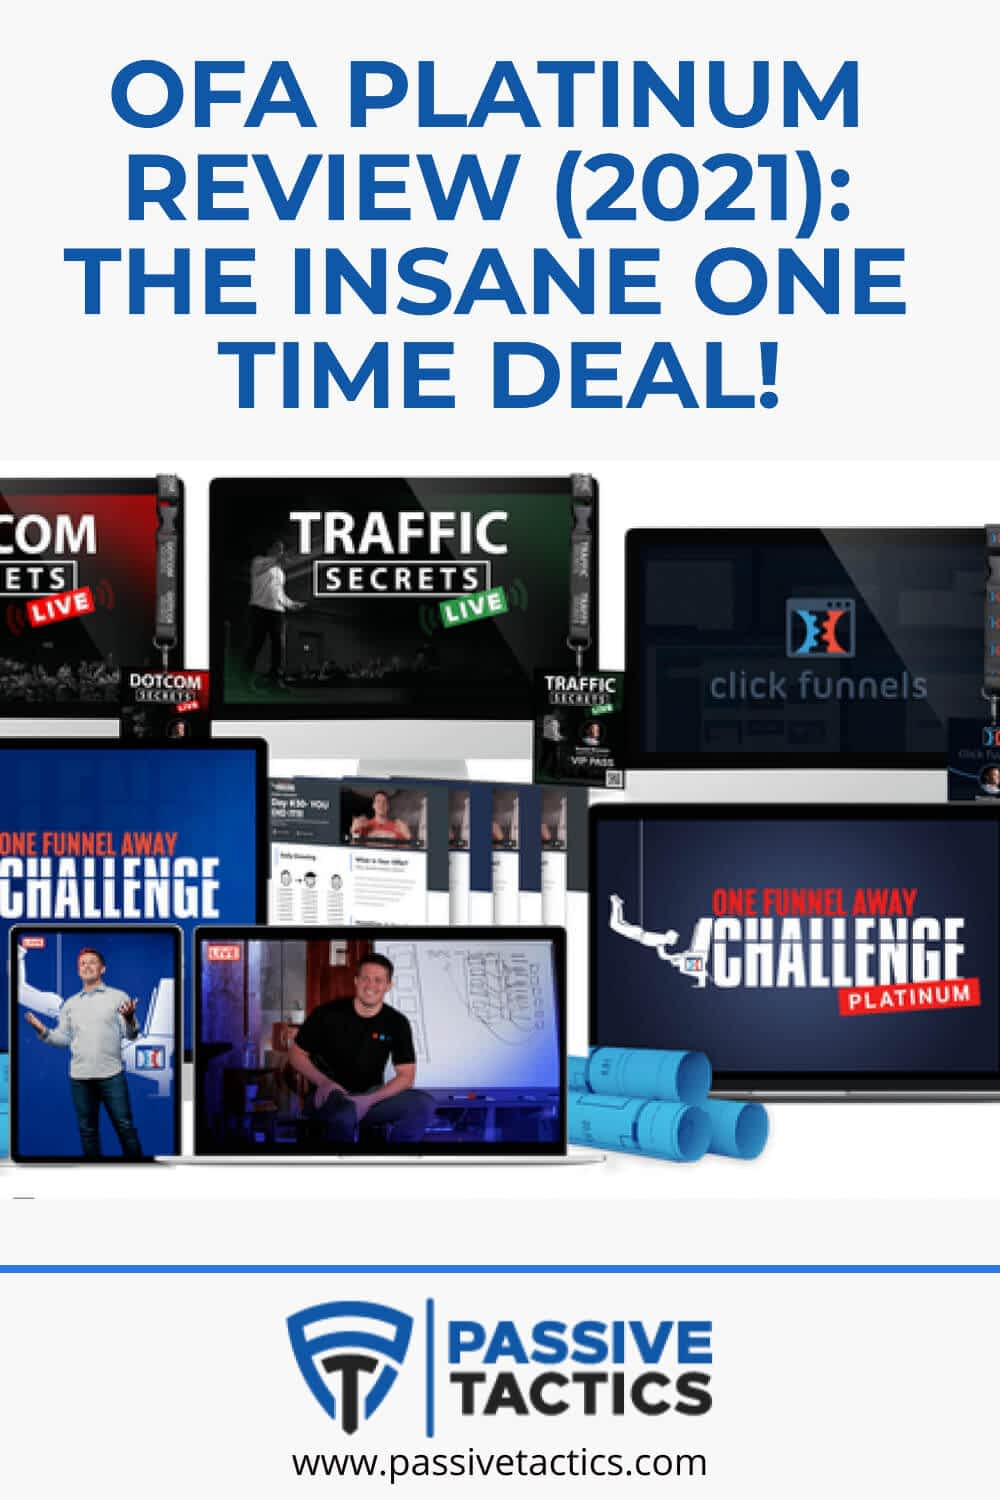 OFA Platinum Review (2021): The Insane One Time Deal!